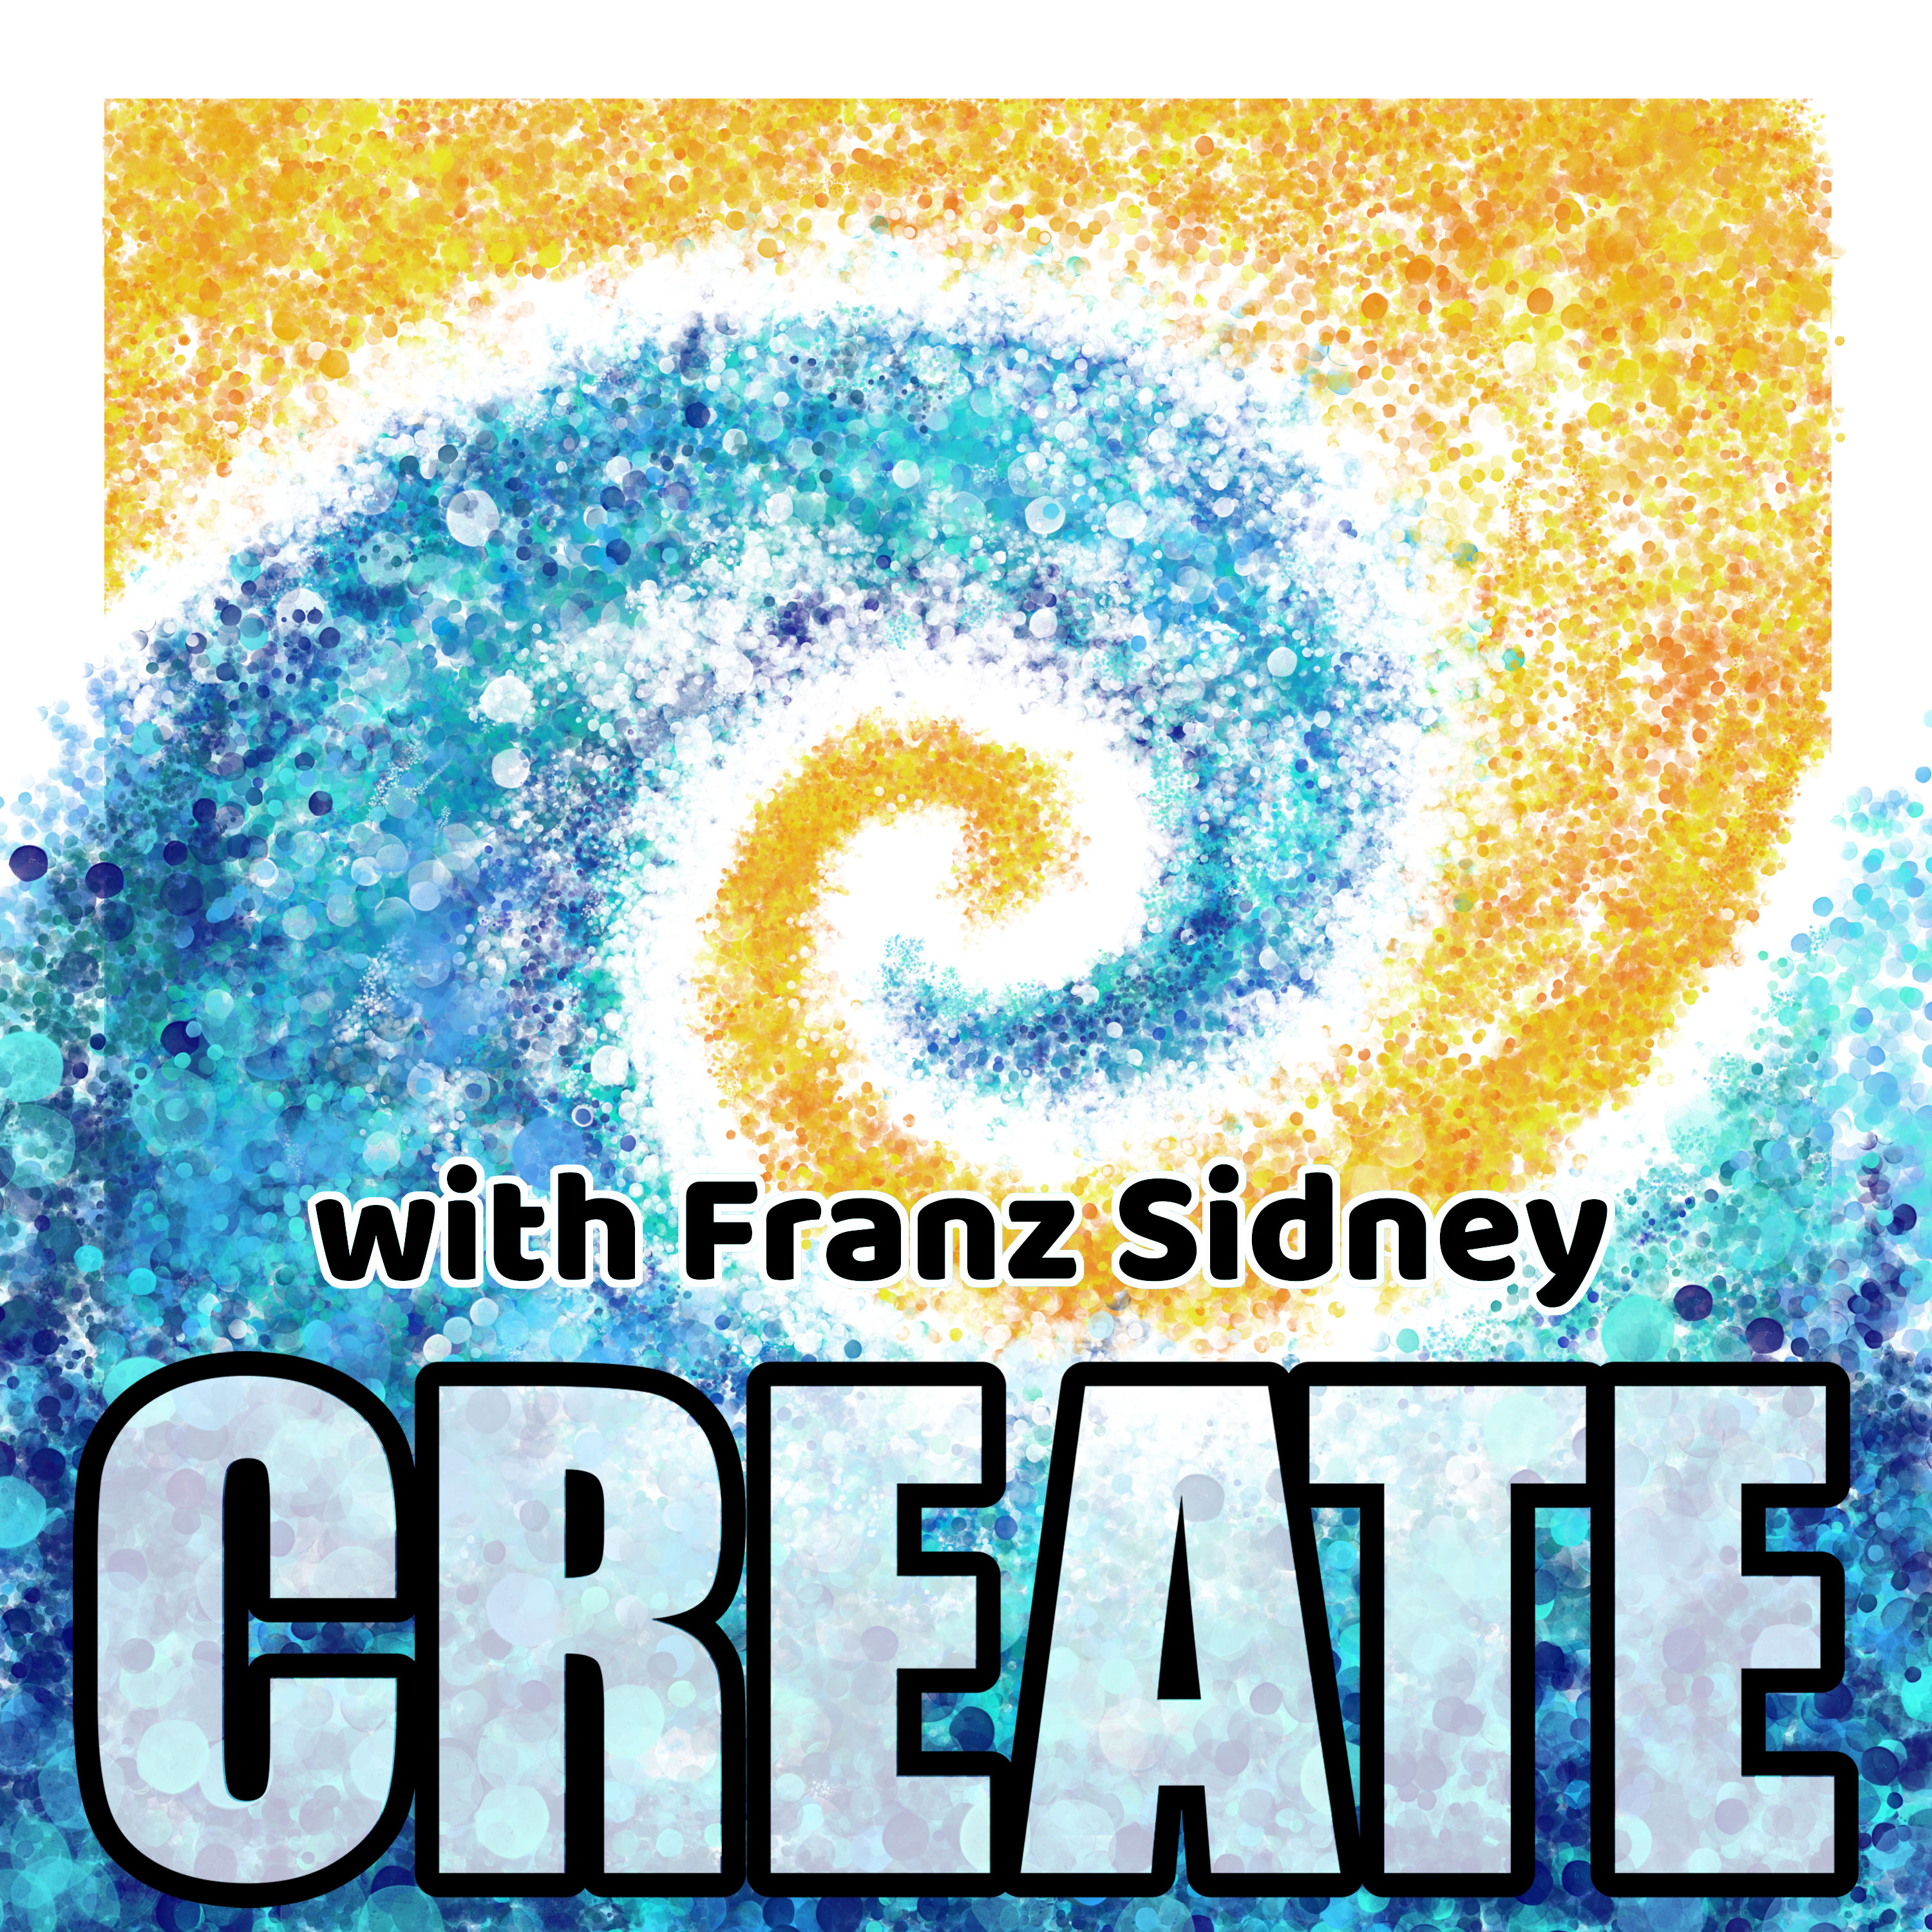 Create with Franz